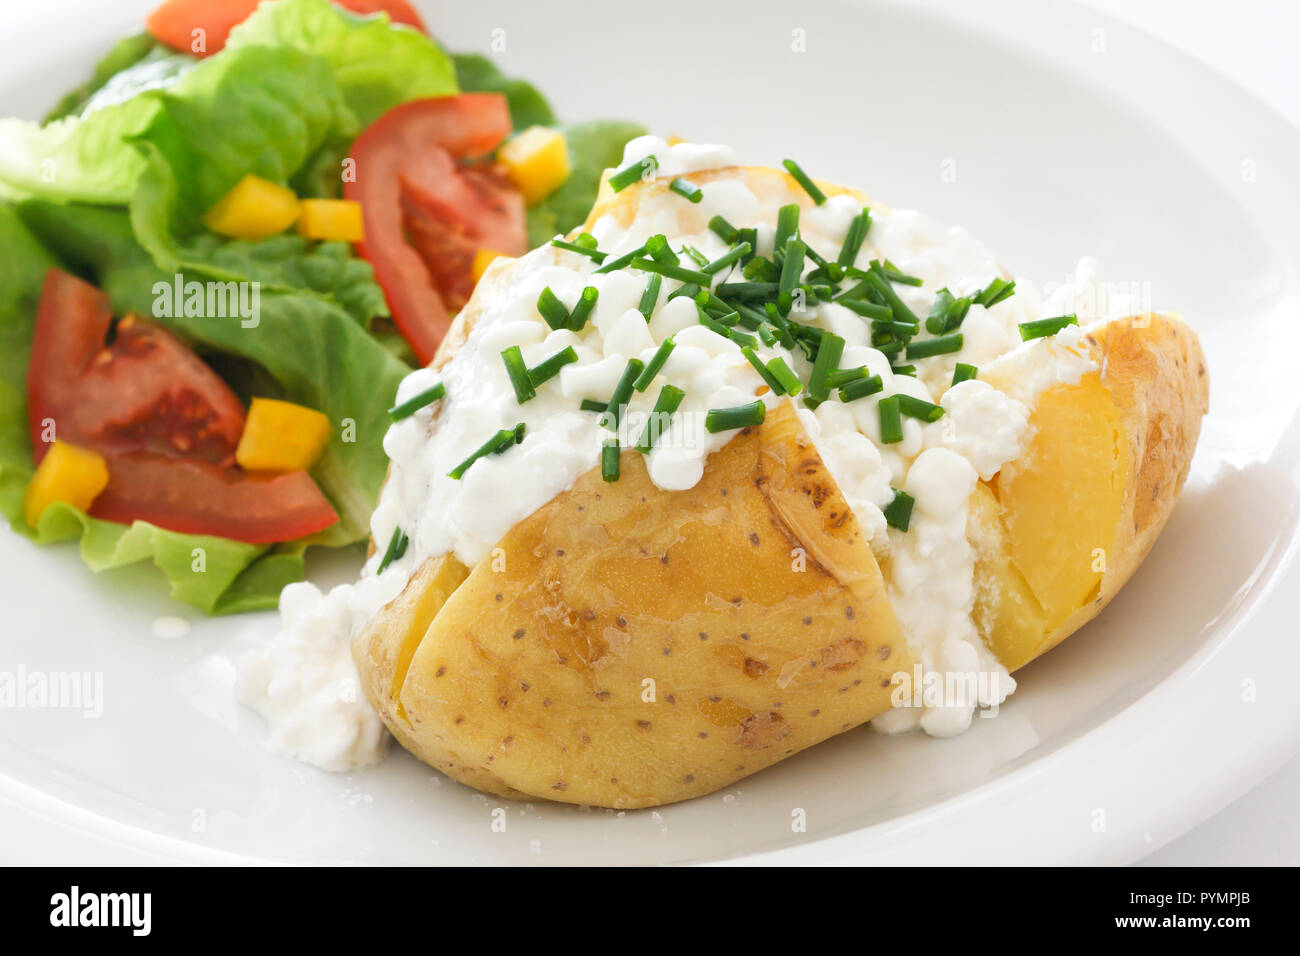 Fabulous Baked Potato With Cottage Cheese Chives And Fresh Salad On Interior Design Ideas Gentotryabchikinfo